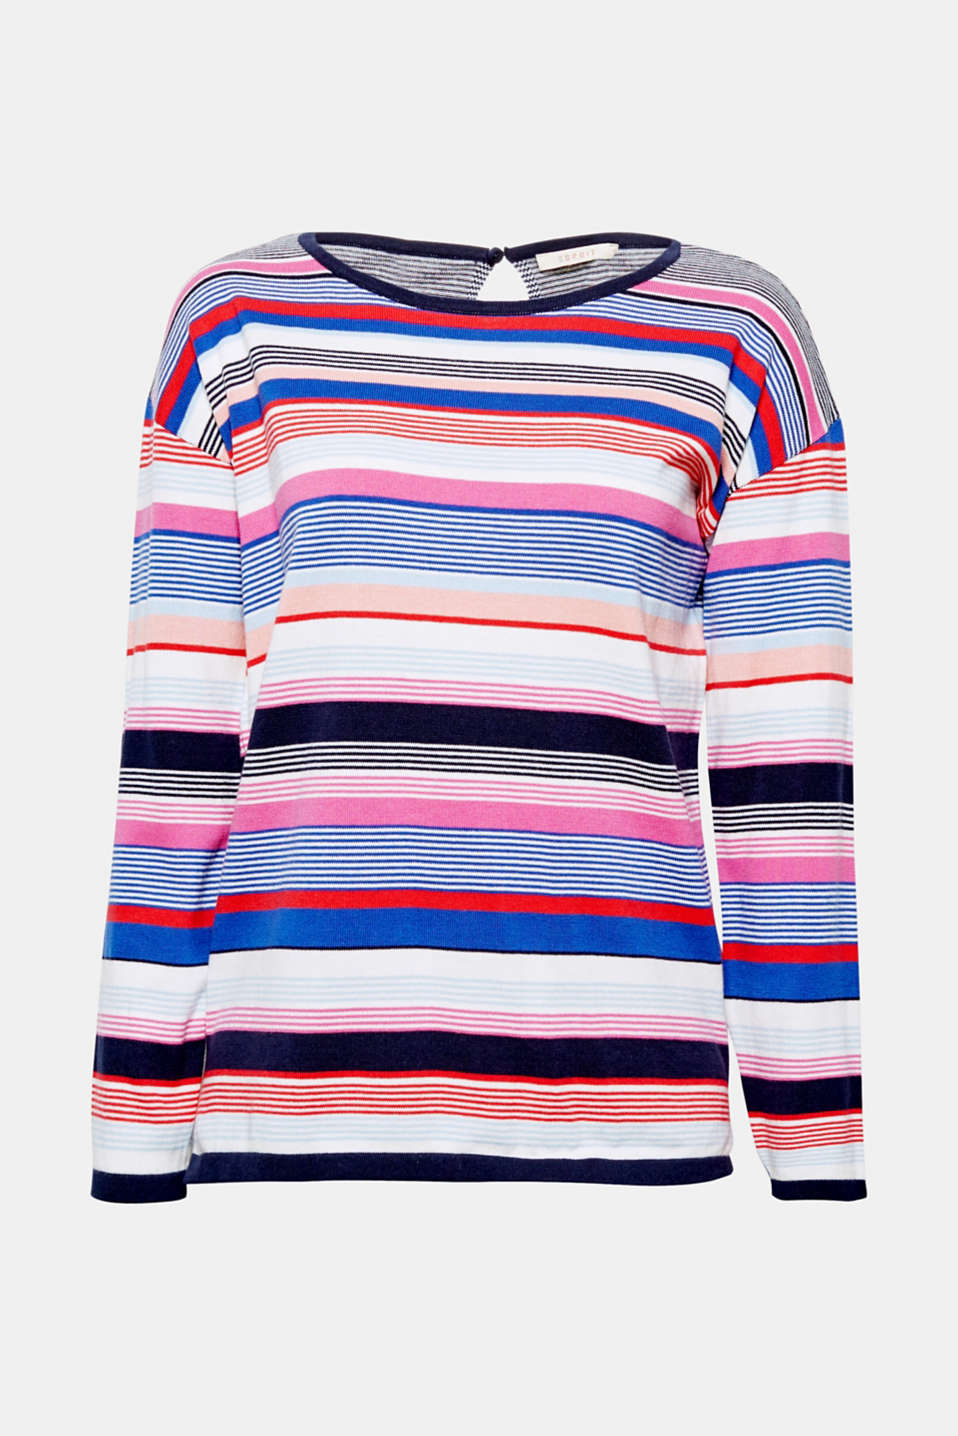 Say hello to your new, good-vibe jumper - featuring vibrant, multi-colour stripes and a casual, comfy cut!